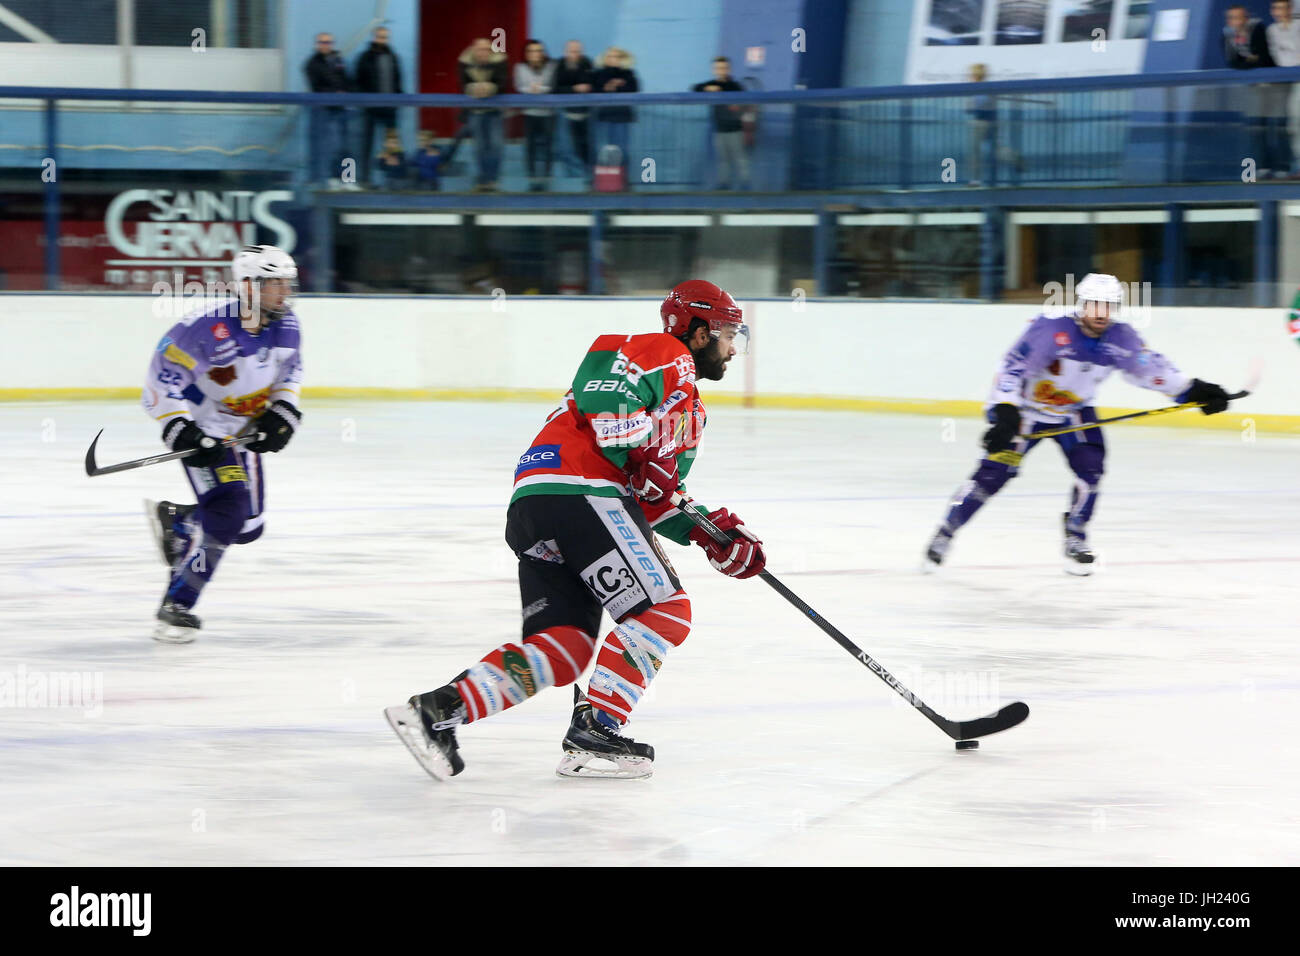 Ice Hockey match.  Players in action. France. - Stock Image